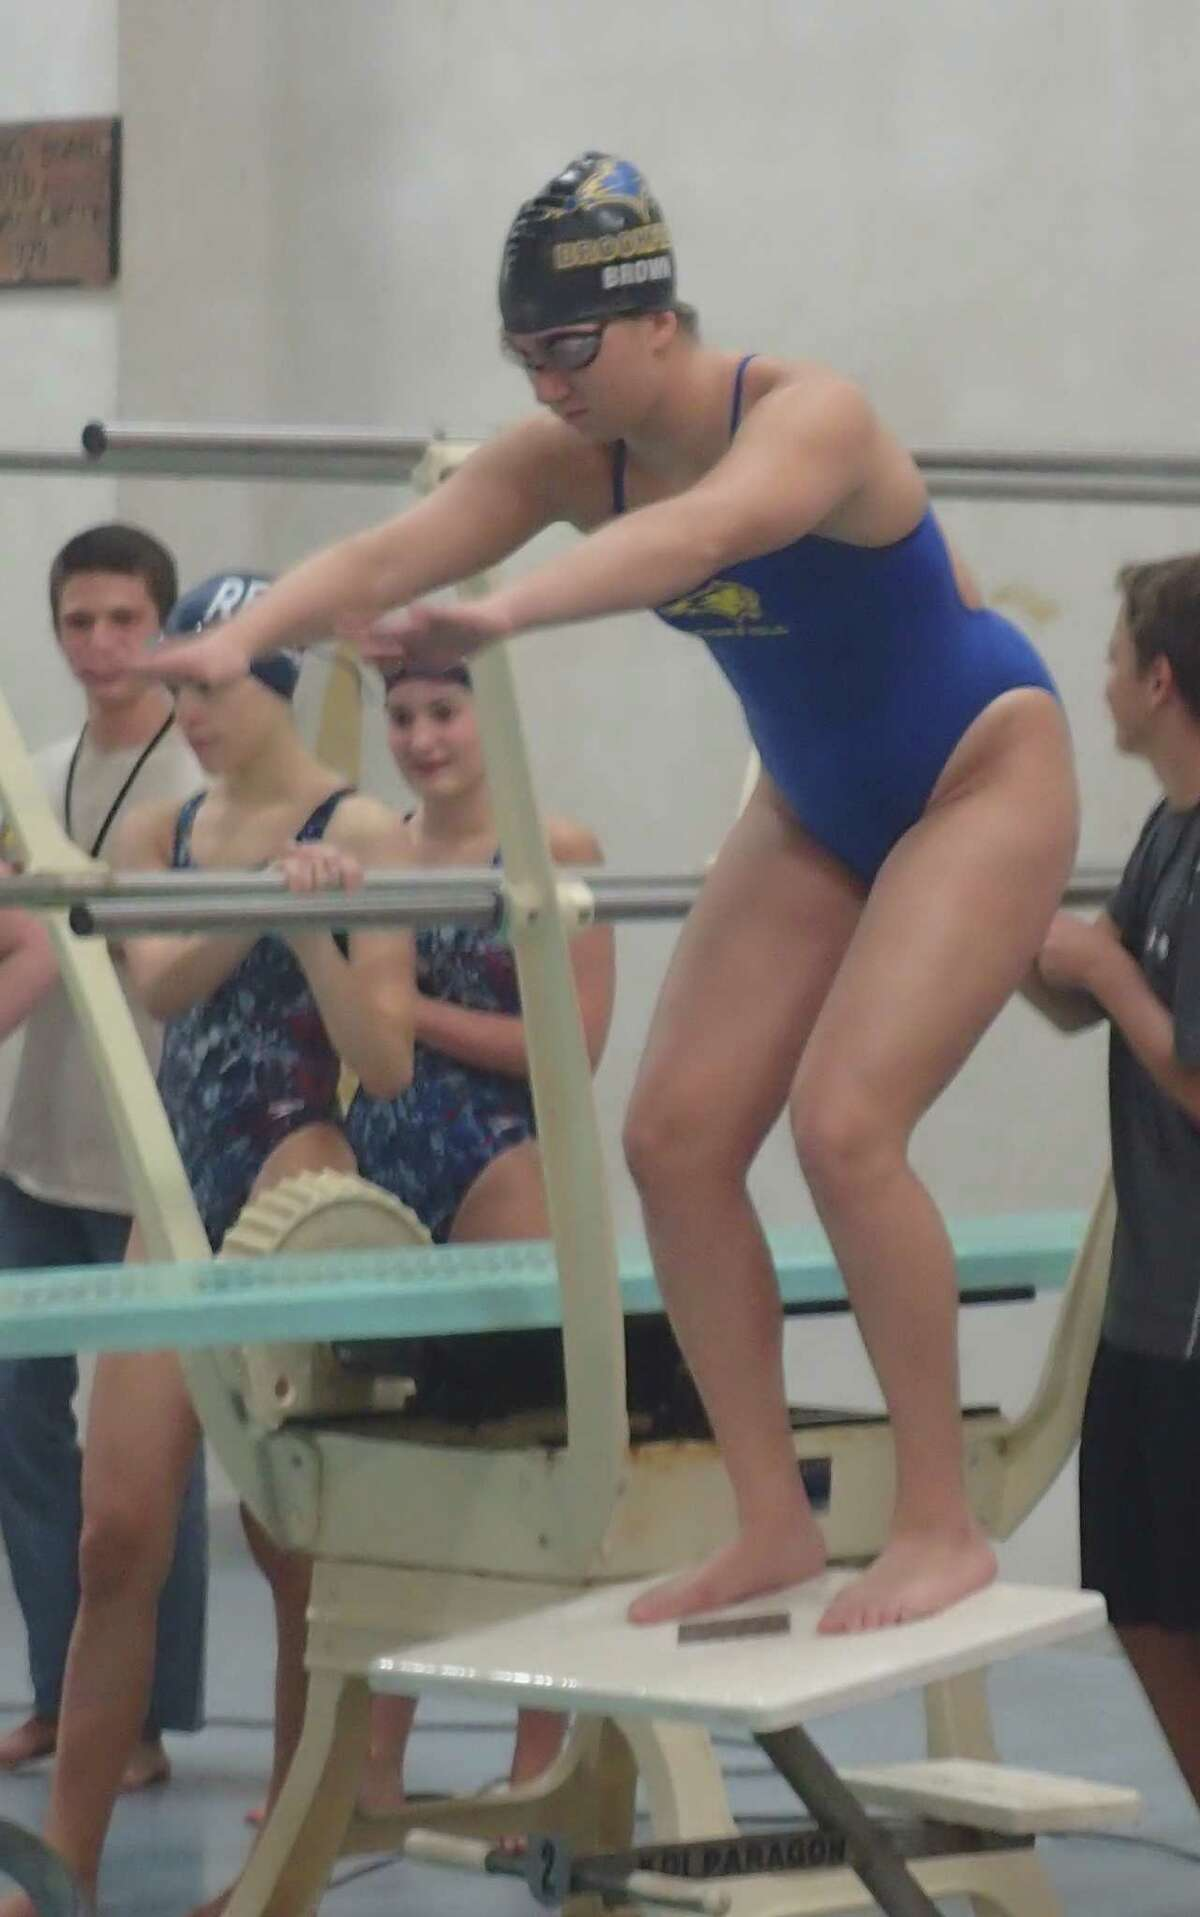 Brookfield's Rachel Brown gets set to swim the anchor leg of the 200-yard medley relay during Friday's meet at New Fairfield High School, Oct. 16, 2015.